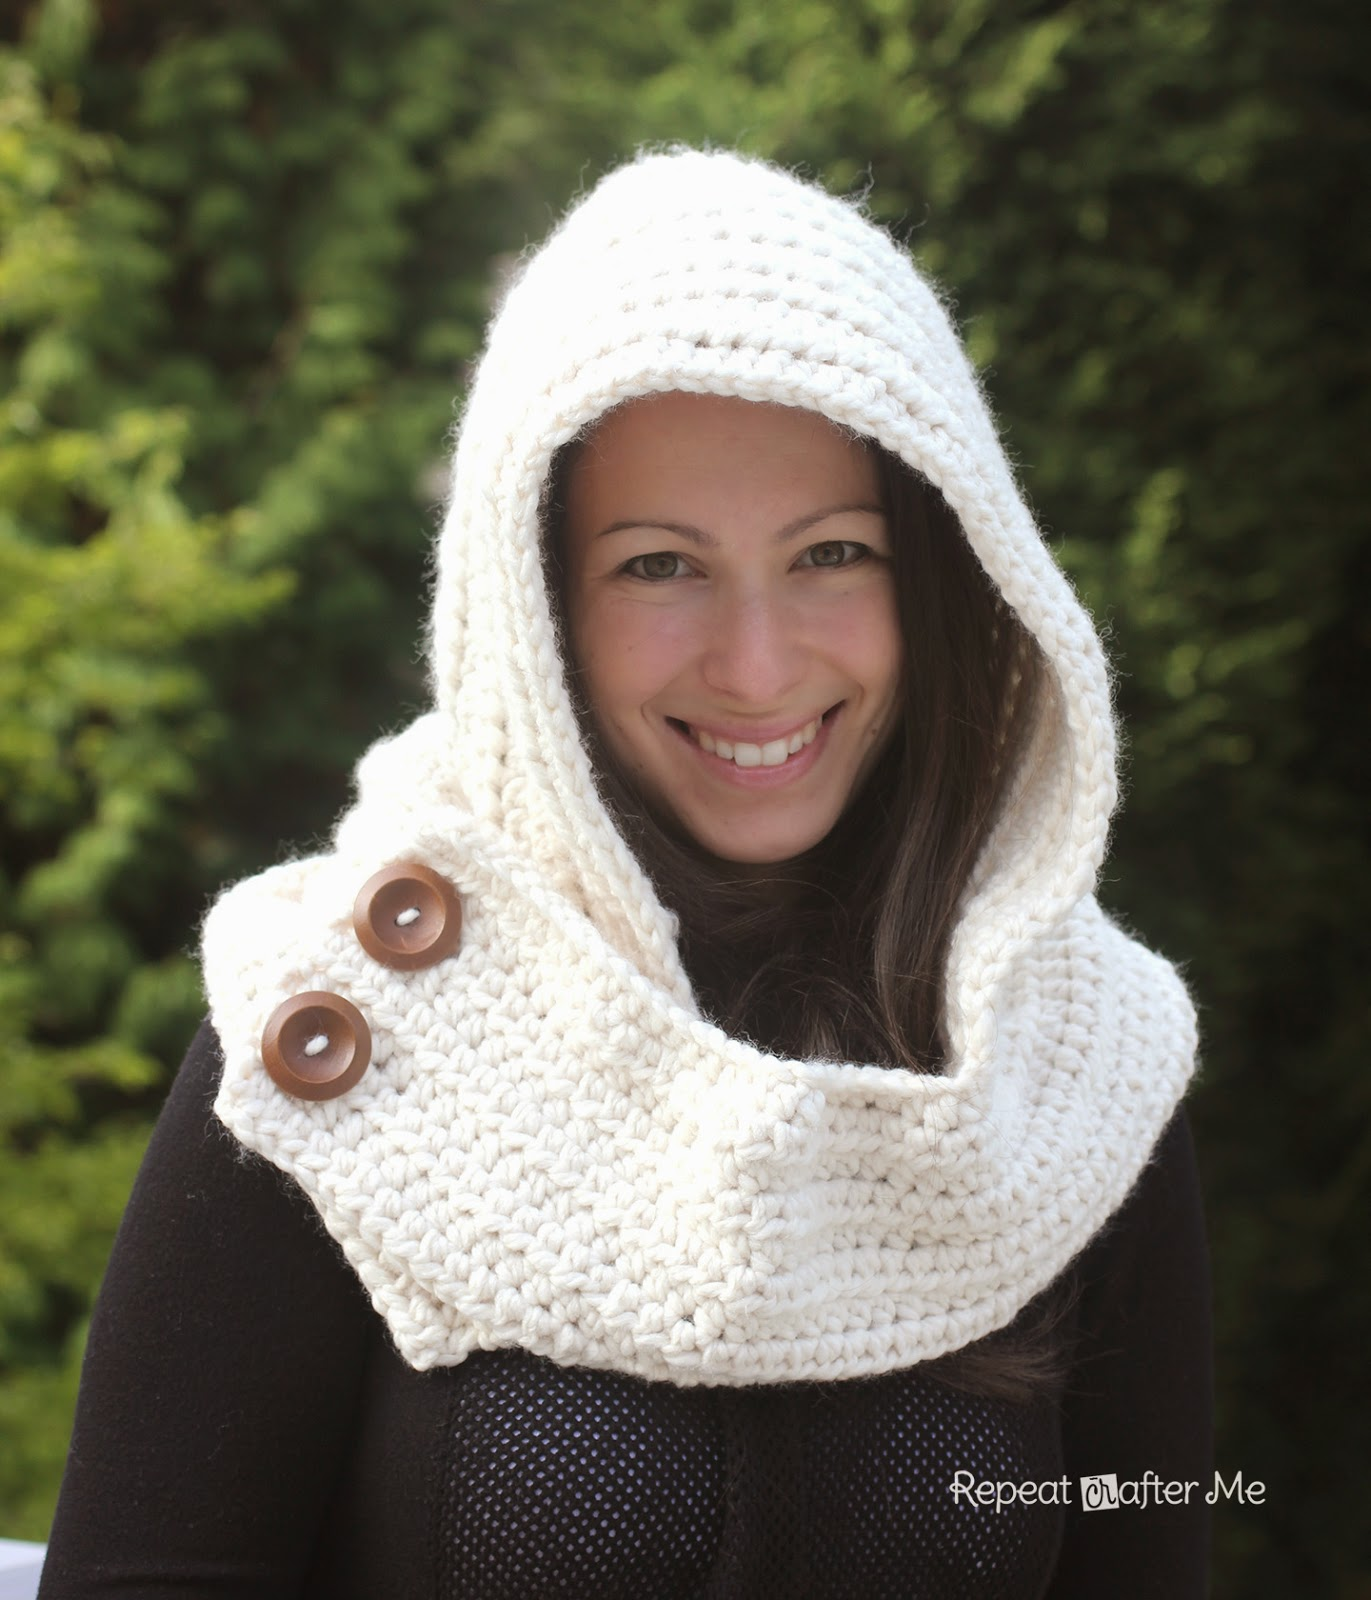 Crochet Patterns Scarfie Yarn : Hooded Crochet Cowl with Lion Brand Thick & Quick Yarn #Scarfie ...